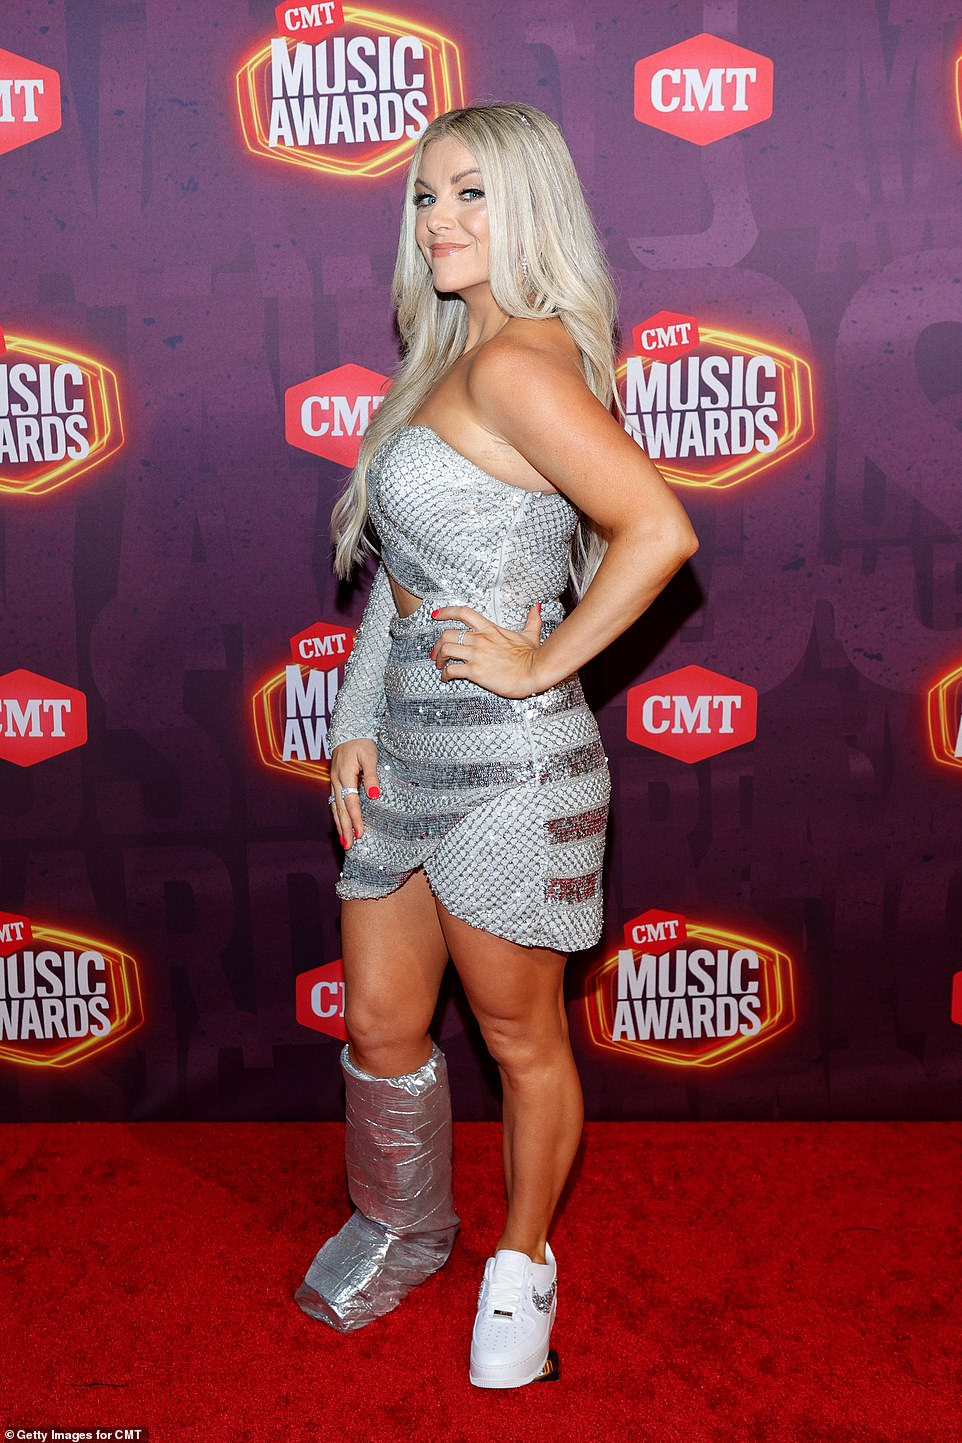 Making it work:Lindsay Ell did not her recent injury get her down by decking out her boot to match her showy silver dress